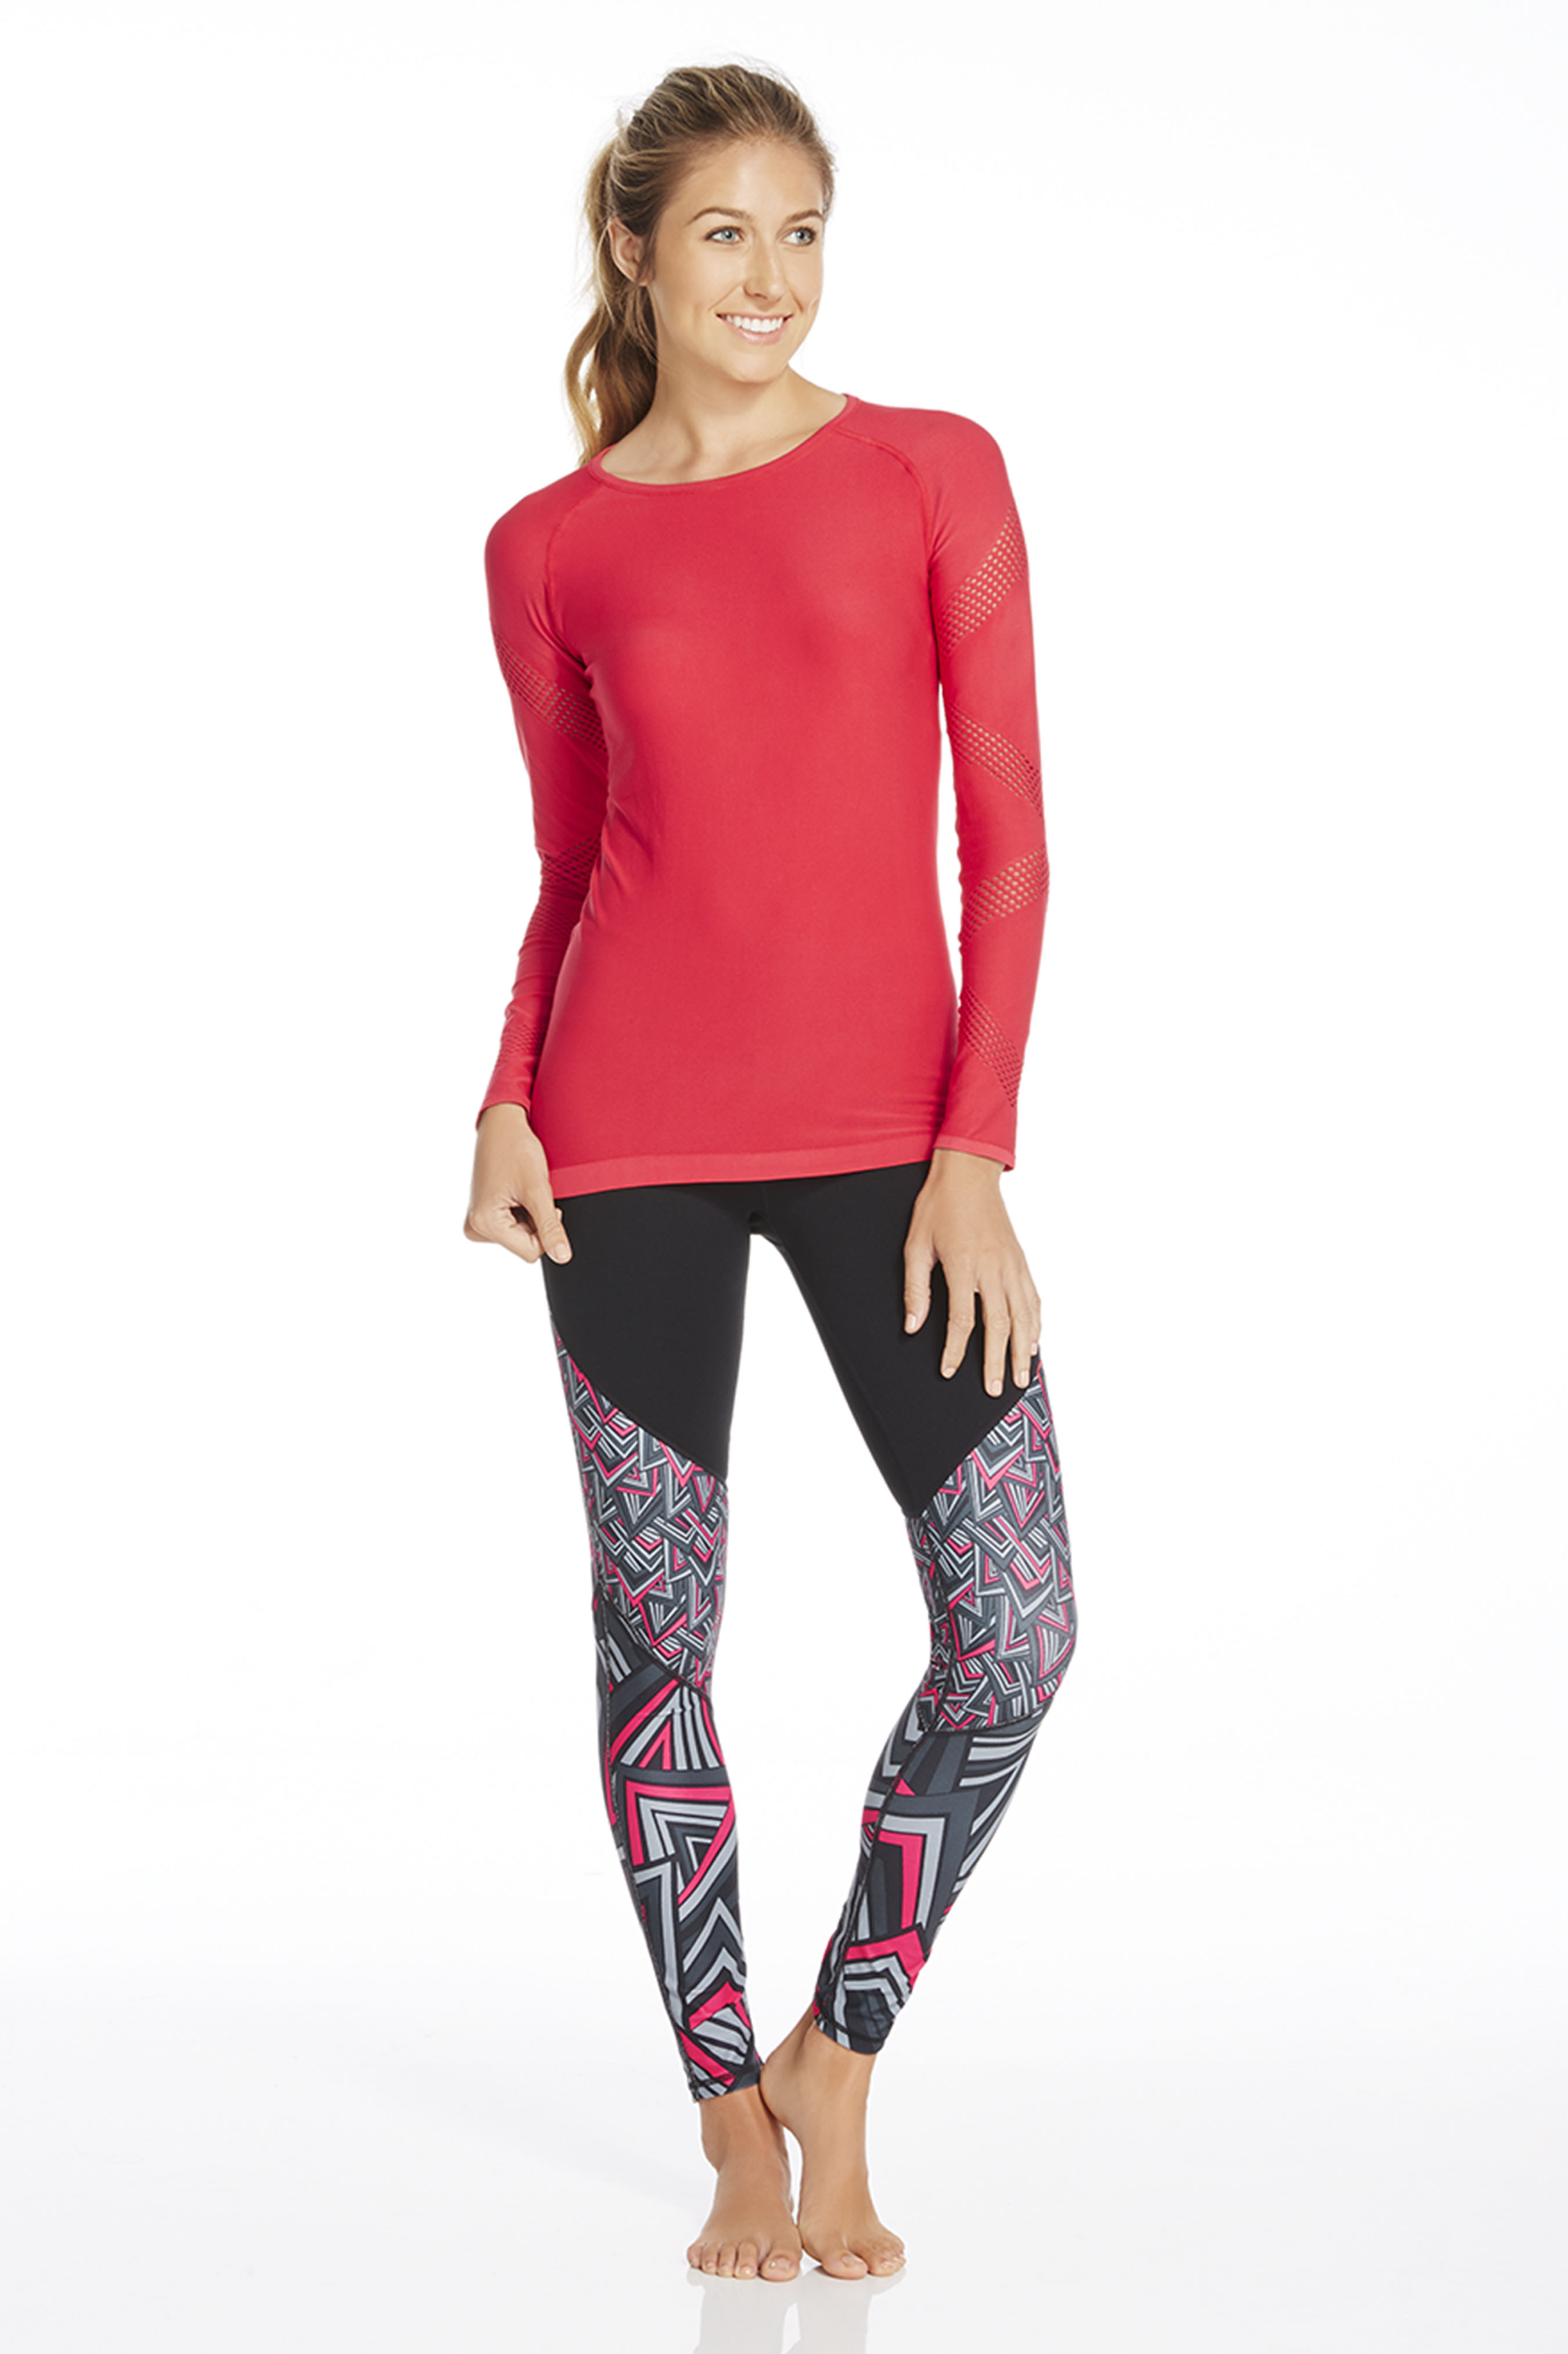 Bongo Outfit - Get great athletic wear at Fabletics